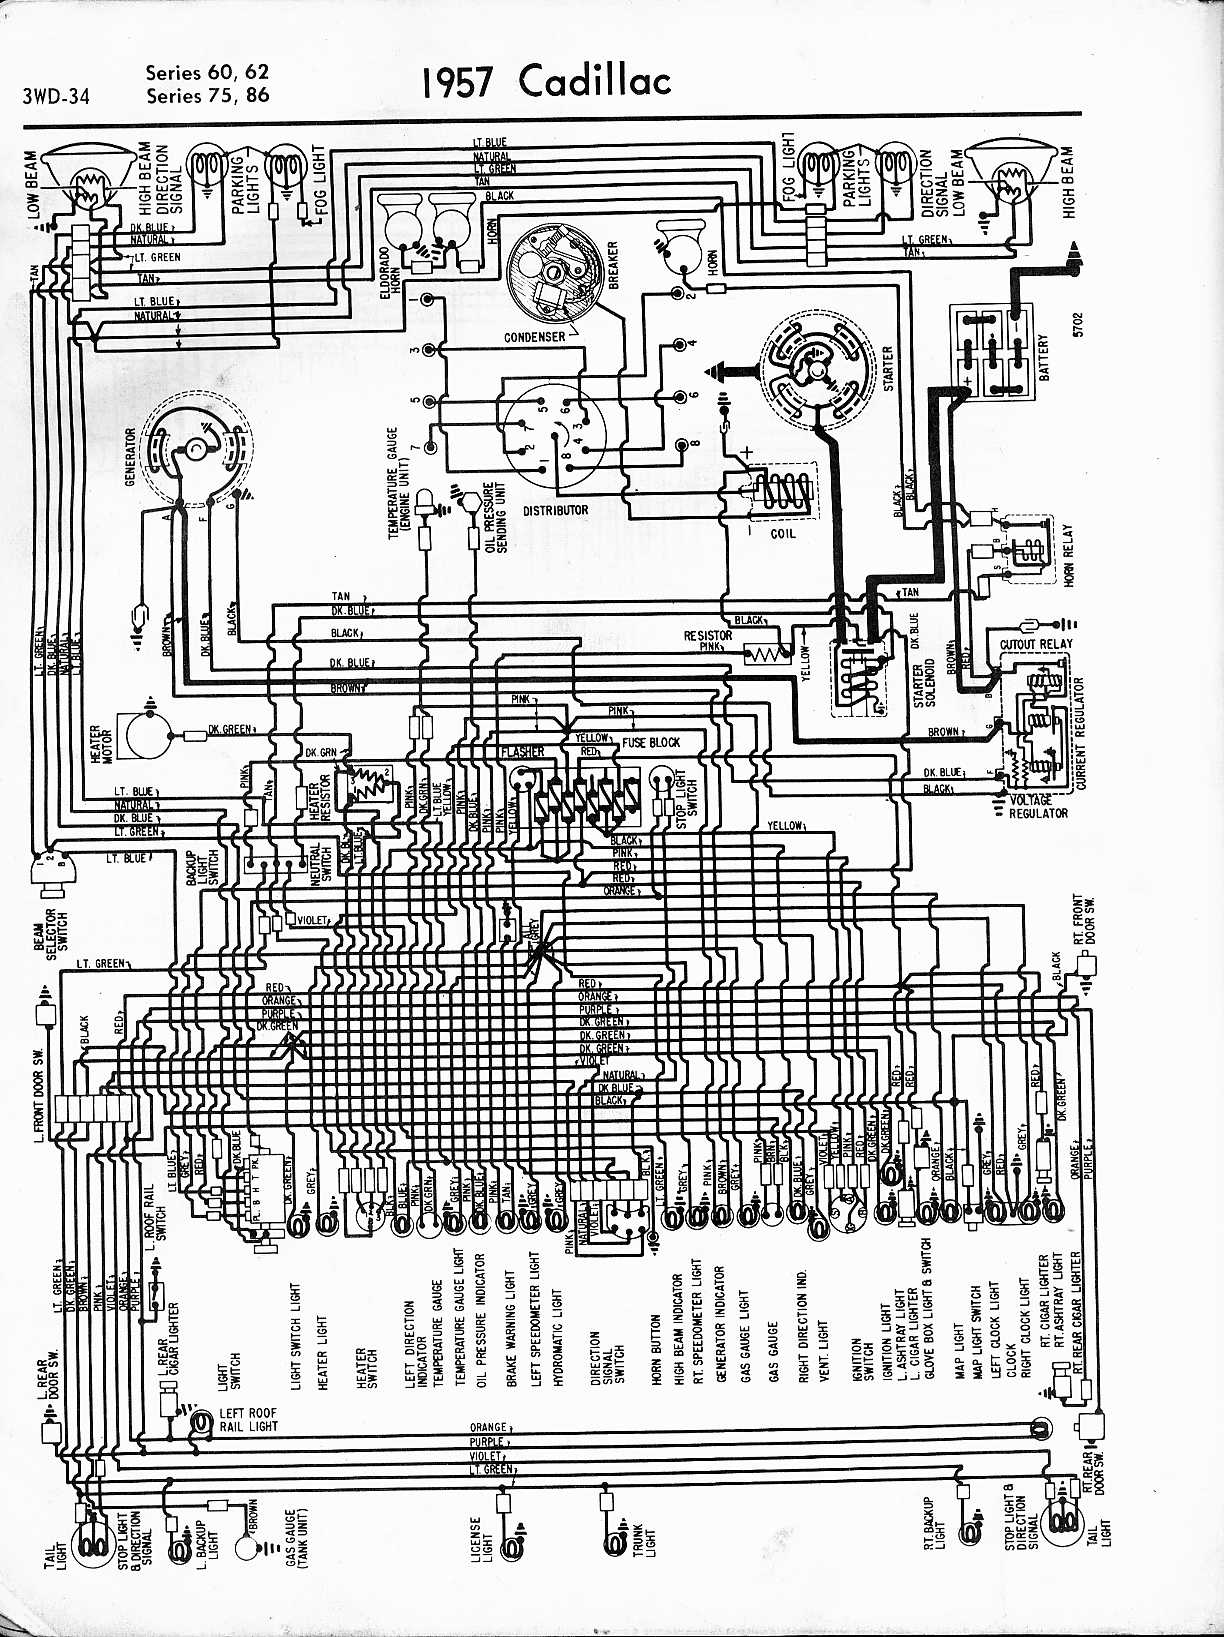 Car Diagrams 1961 Cadillac Wiring Diagram 1967 Plymouth Library 1965 Econoline 1957 Series 60 62 75 86